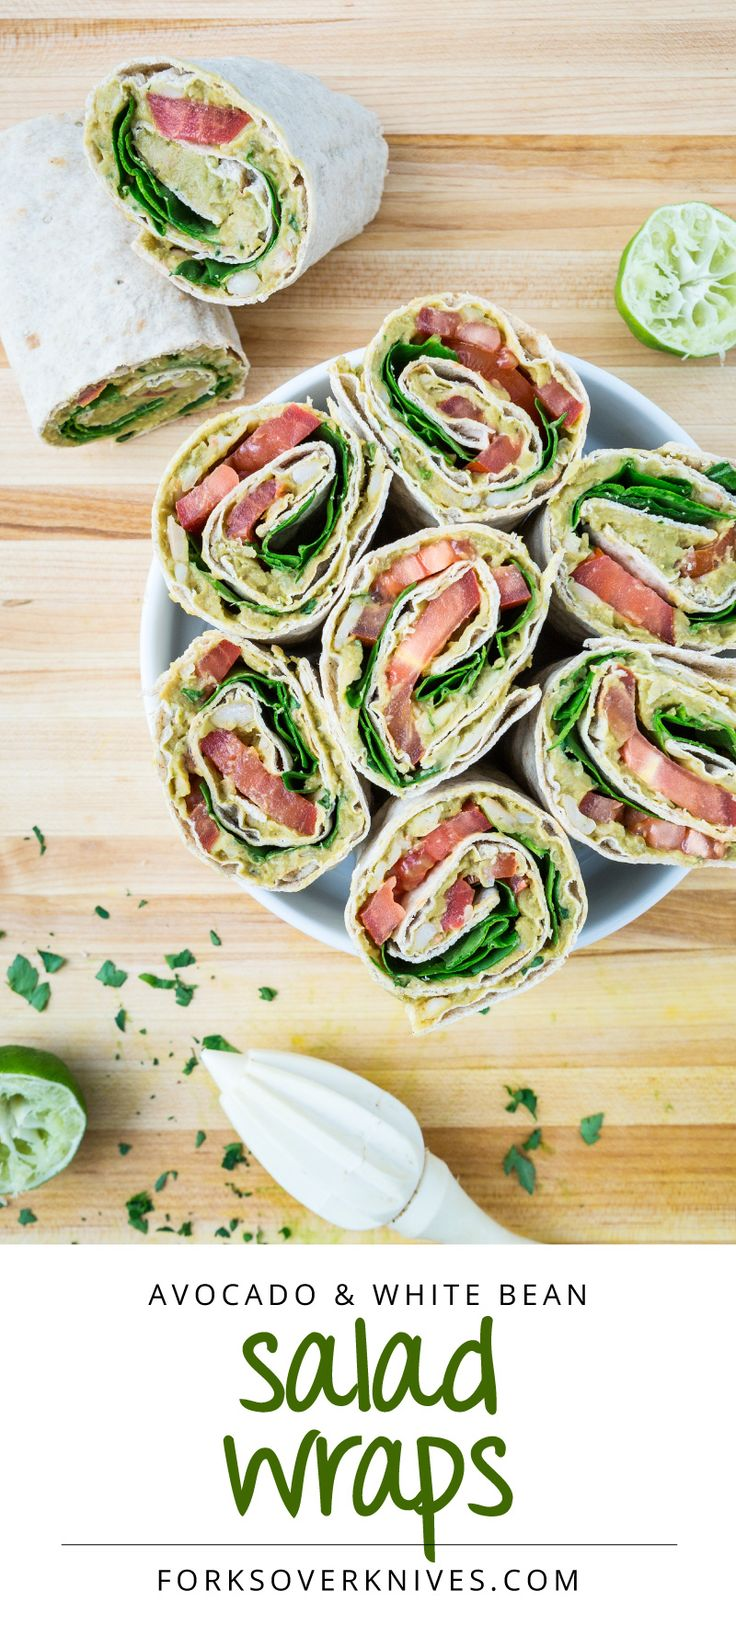 Avocado and White Bean Salad Wraps. Made with baby spinach, northern beans, tomatoes, lime juice, parsley, tamari (or soy sauce), spices, and wheat tortillas. Healthy lunch or dinner. #recipe